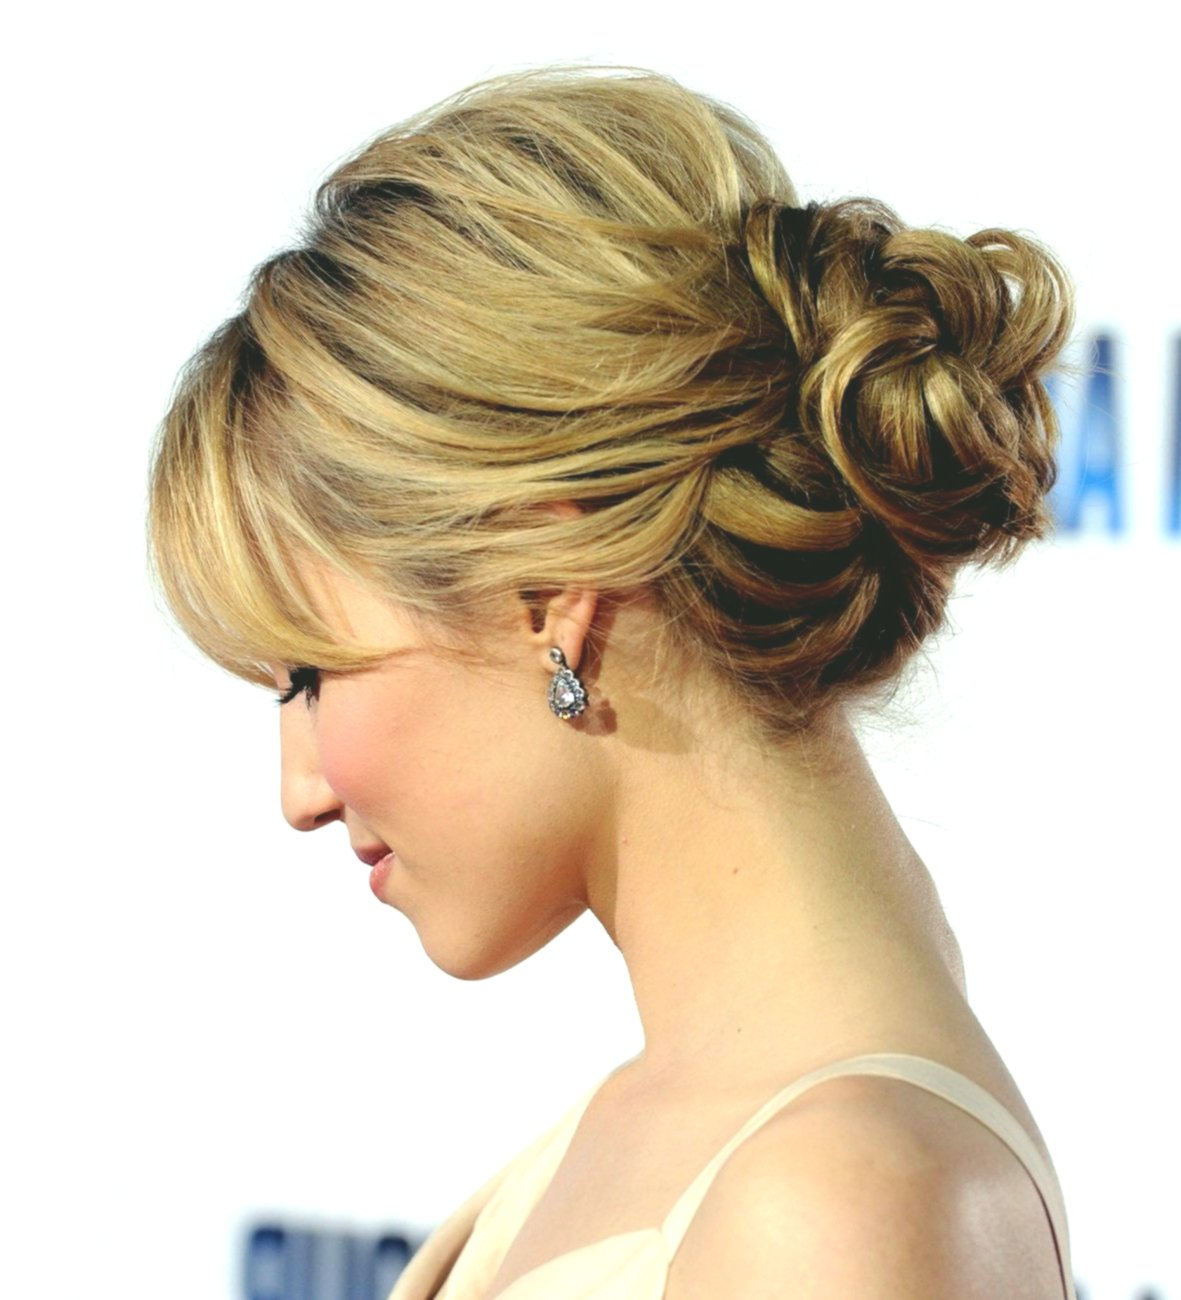 up hairstyles for short hair concept-Charming Updos For Short Hair Ideas